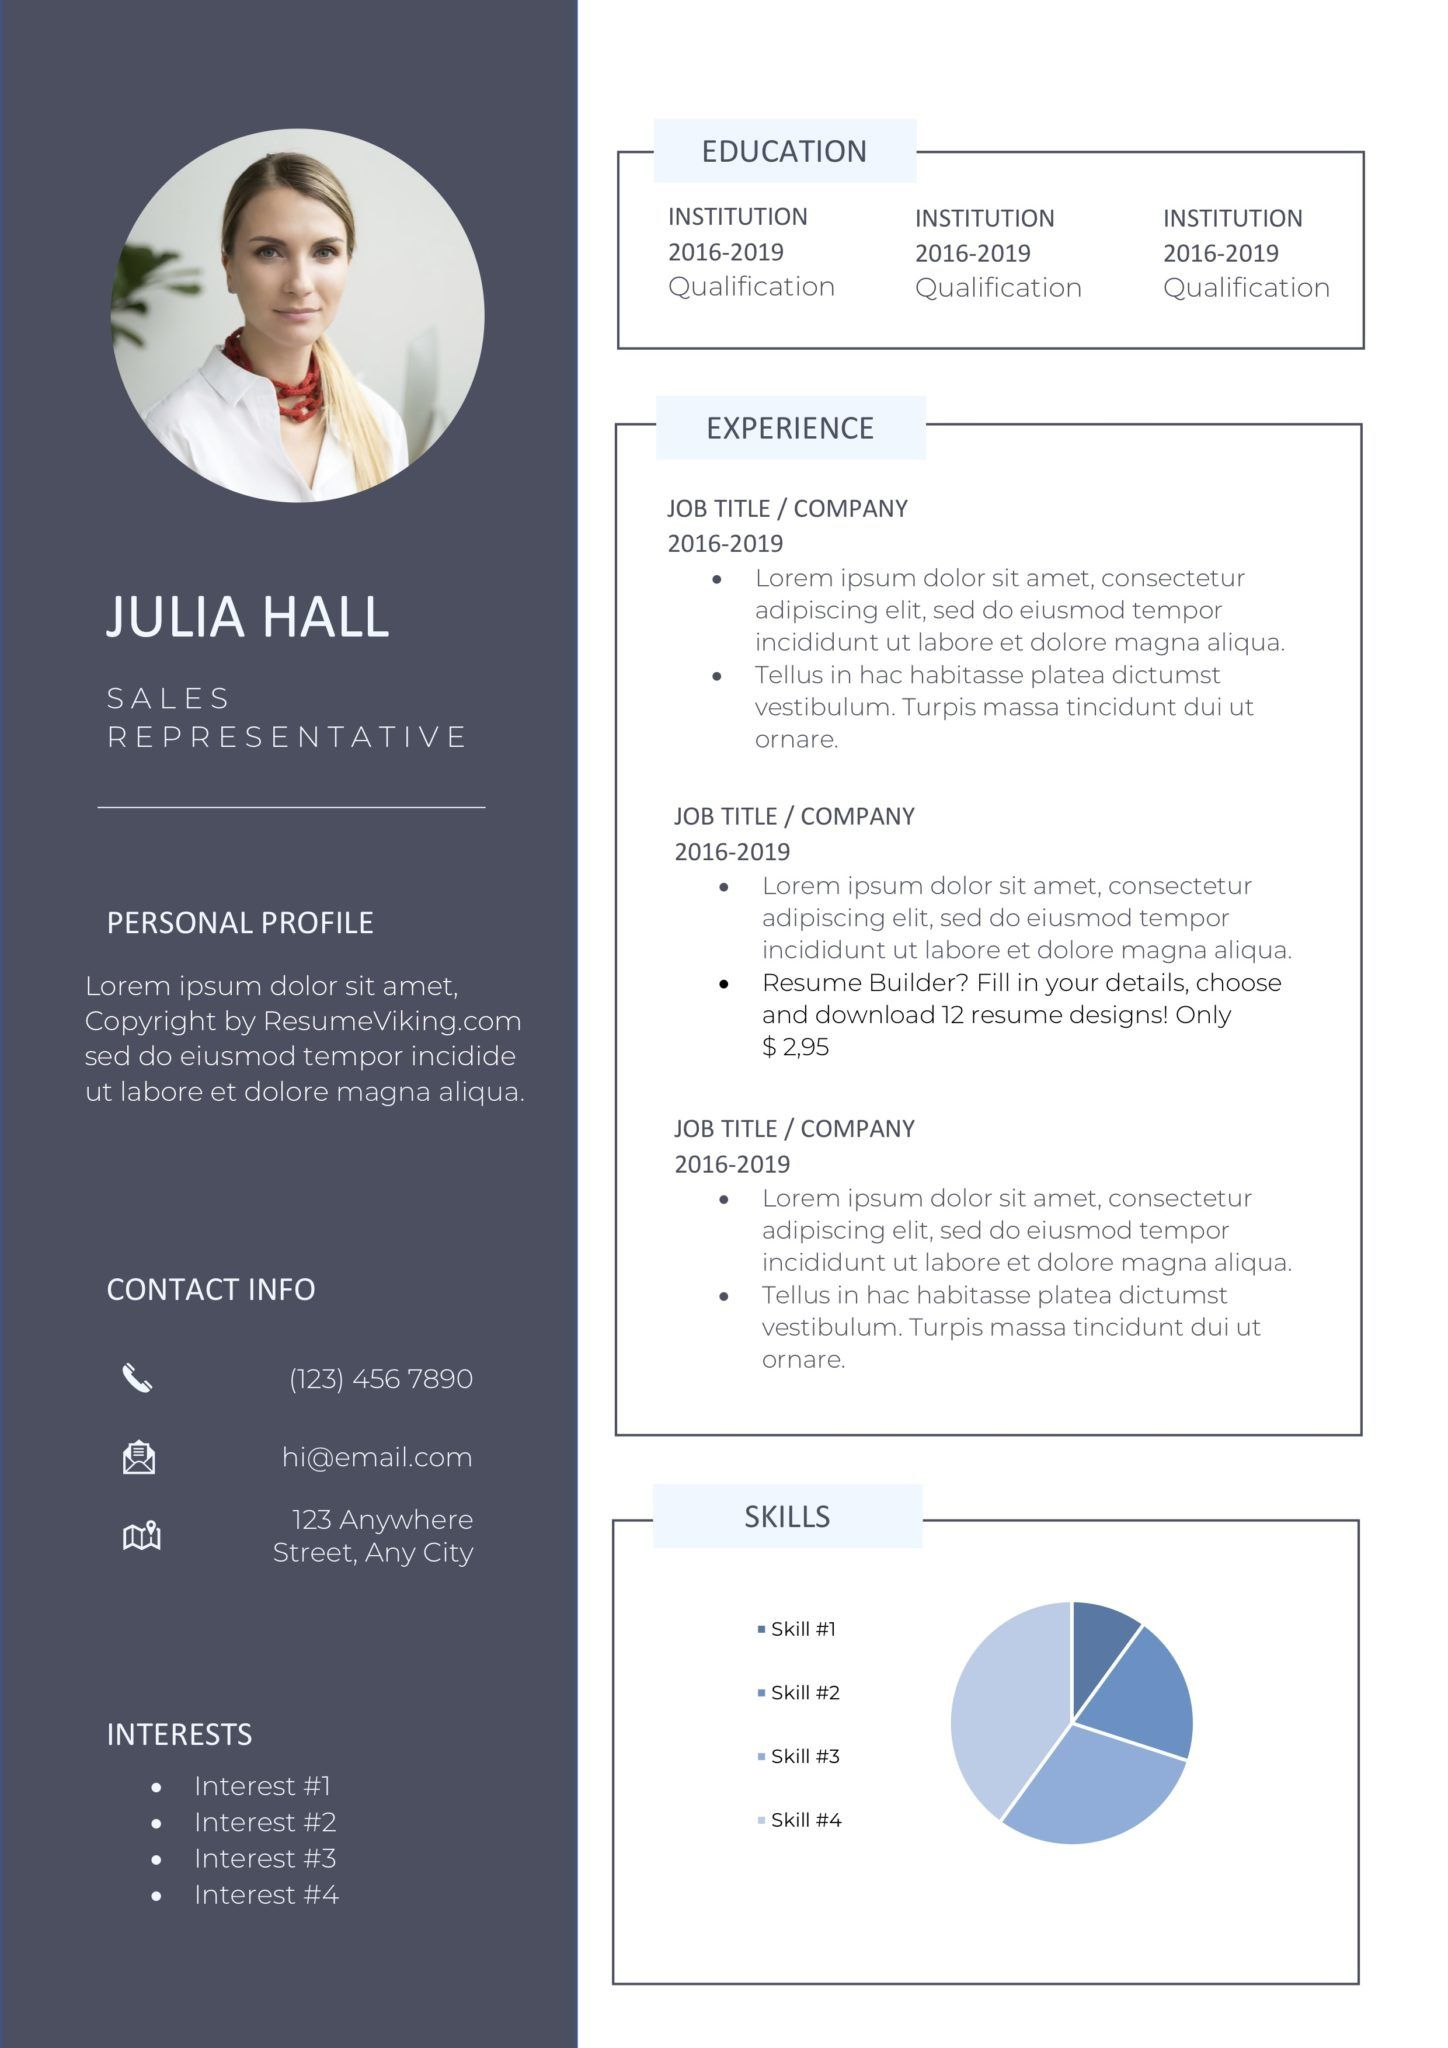 011 Unusual Professional Resume Template Word Free Download Picture  Cv 2020 With PhotoFull